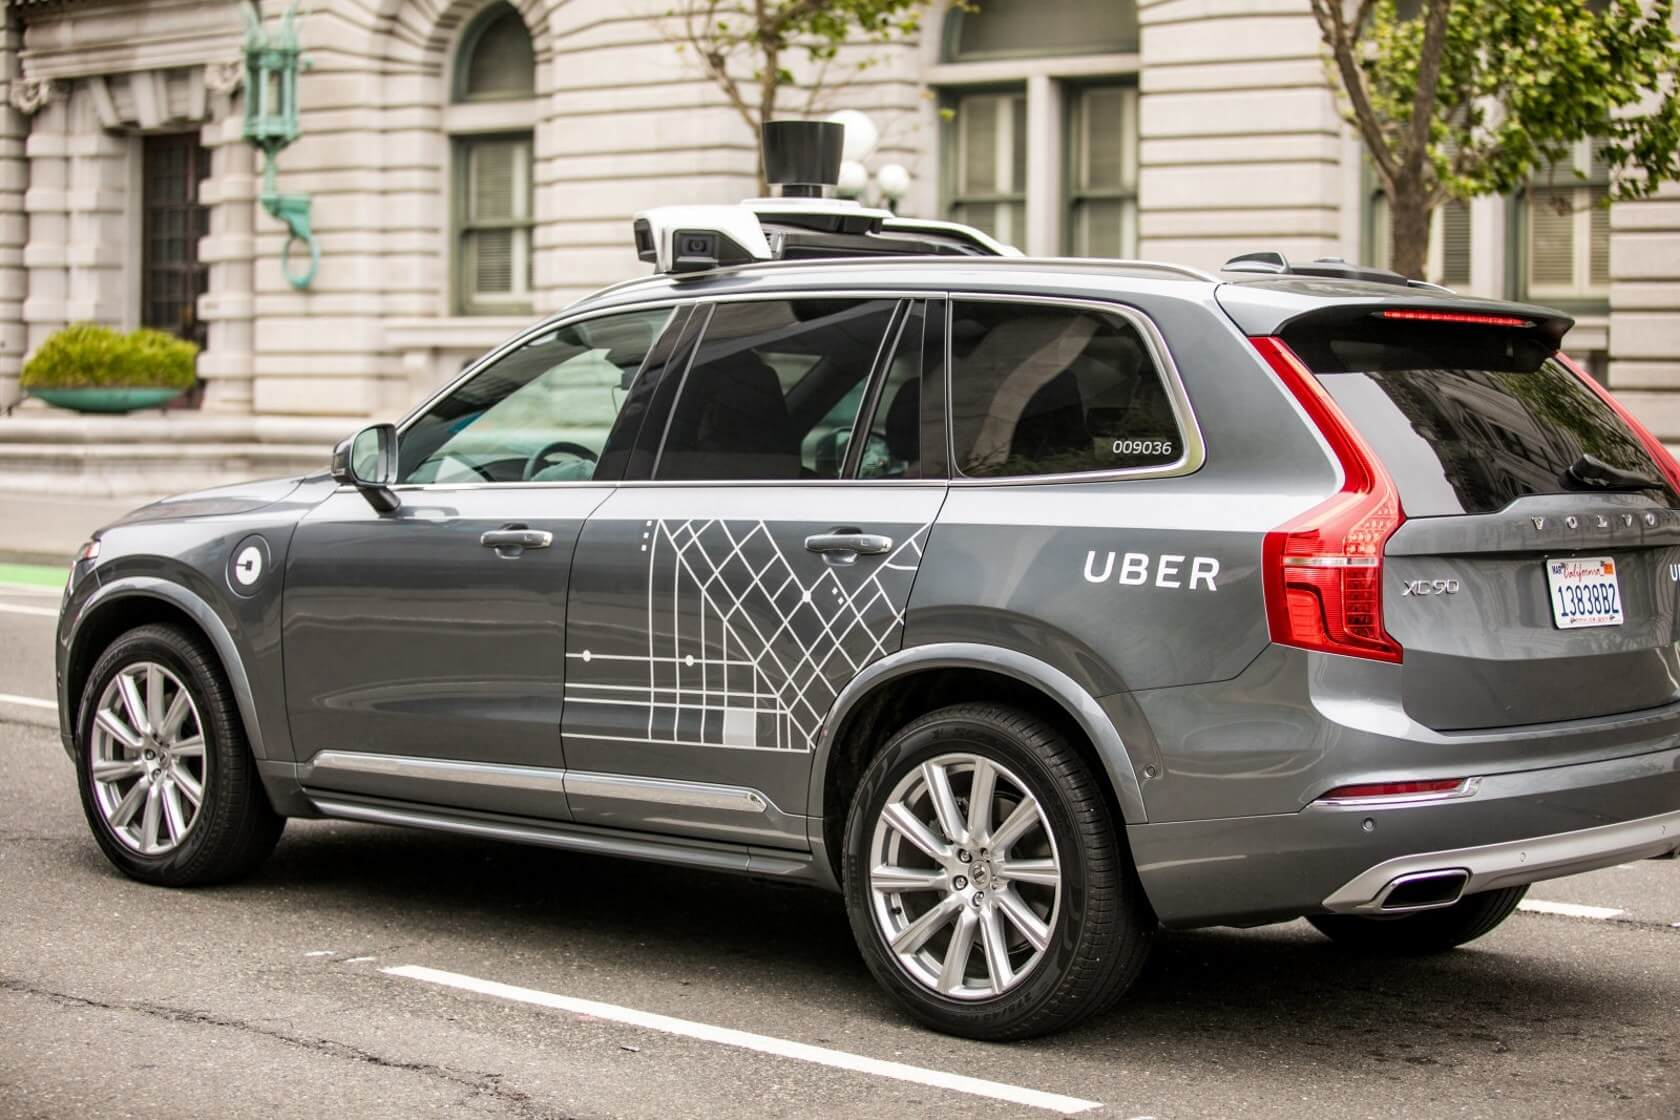 Uber executives were reportedly warned about self-driving tech issues prior to fatal crash